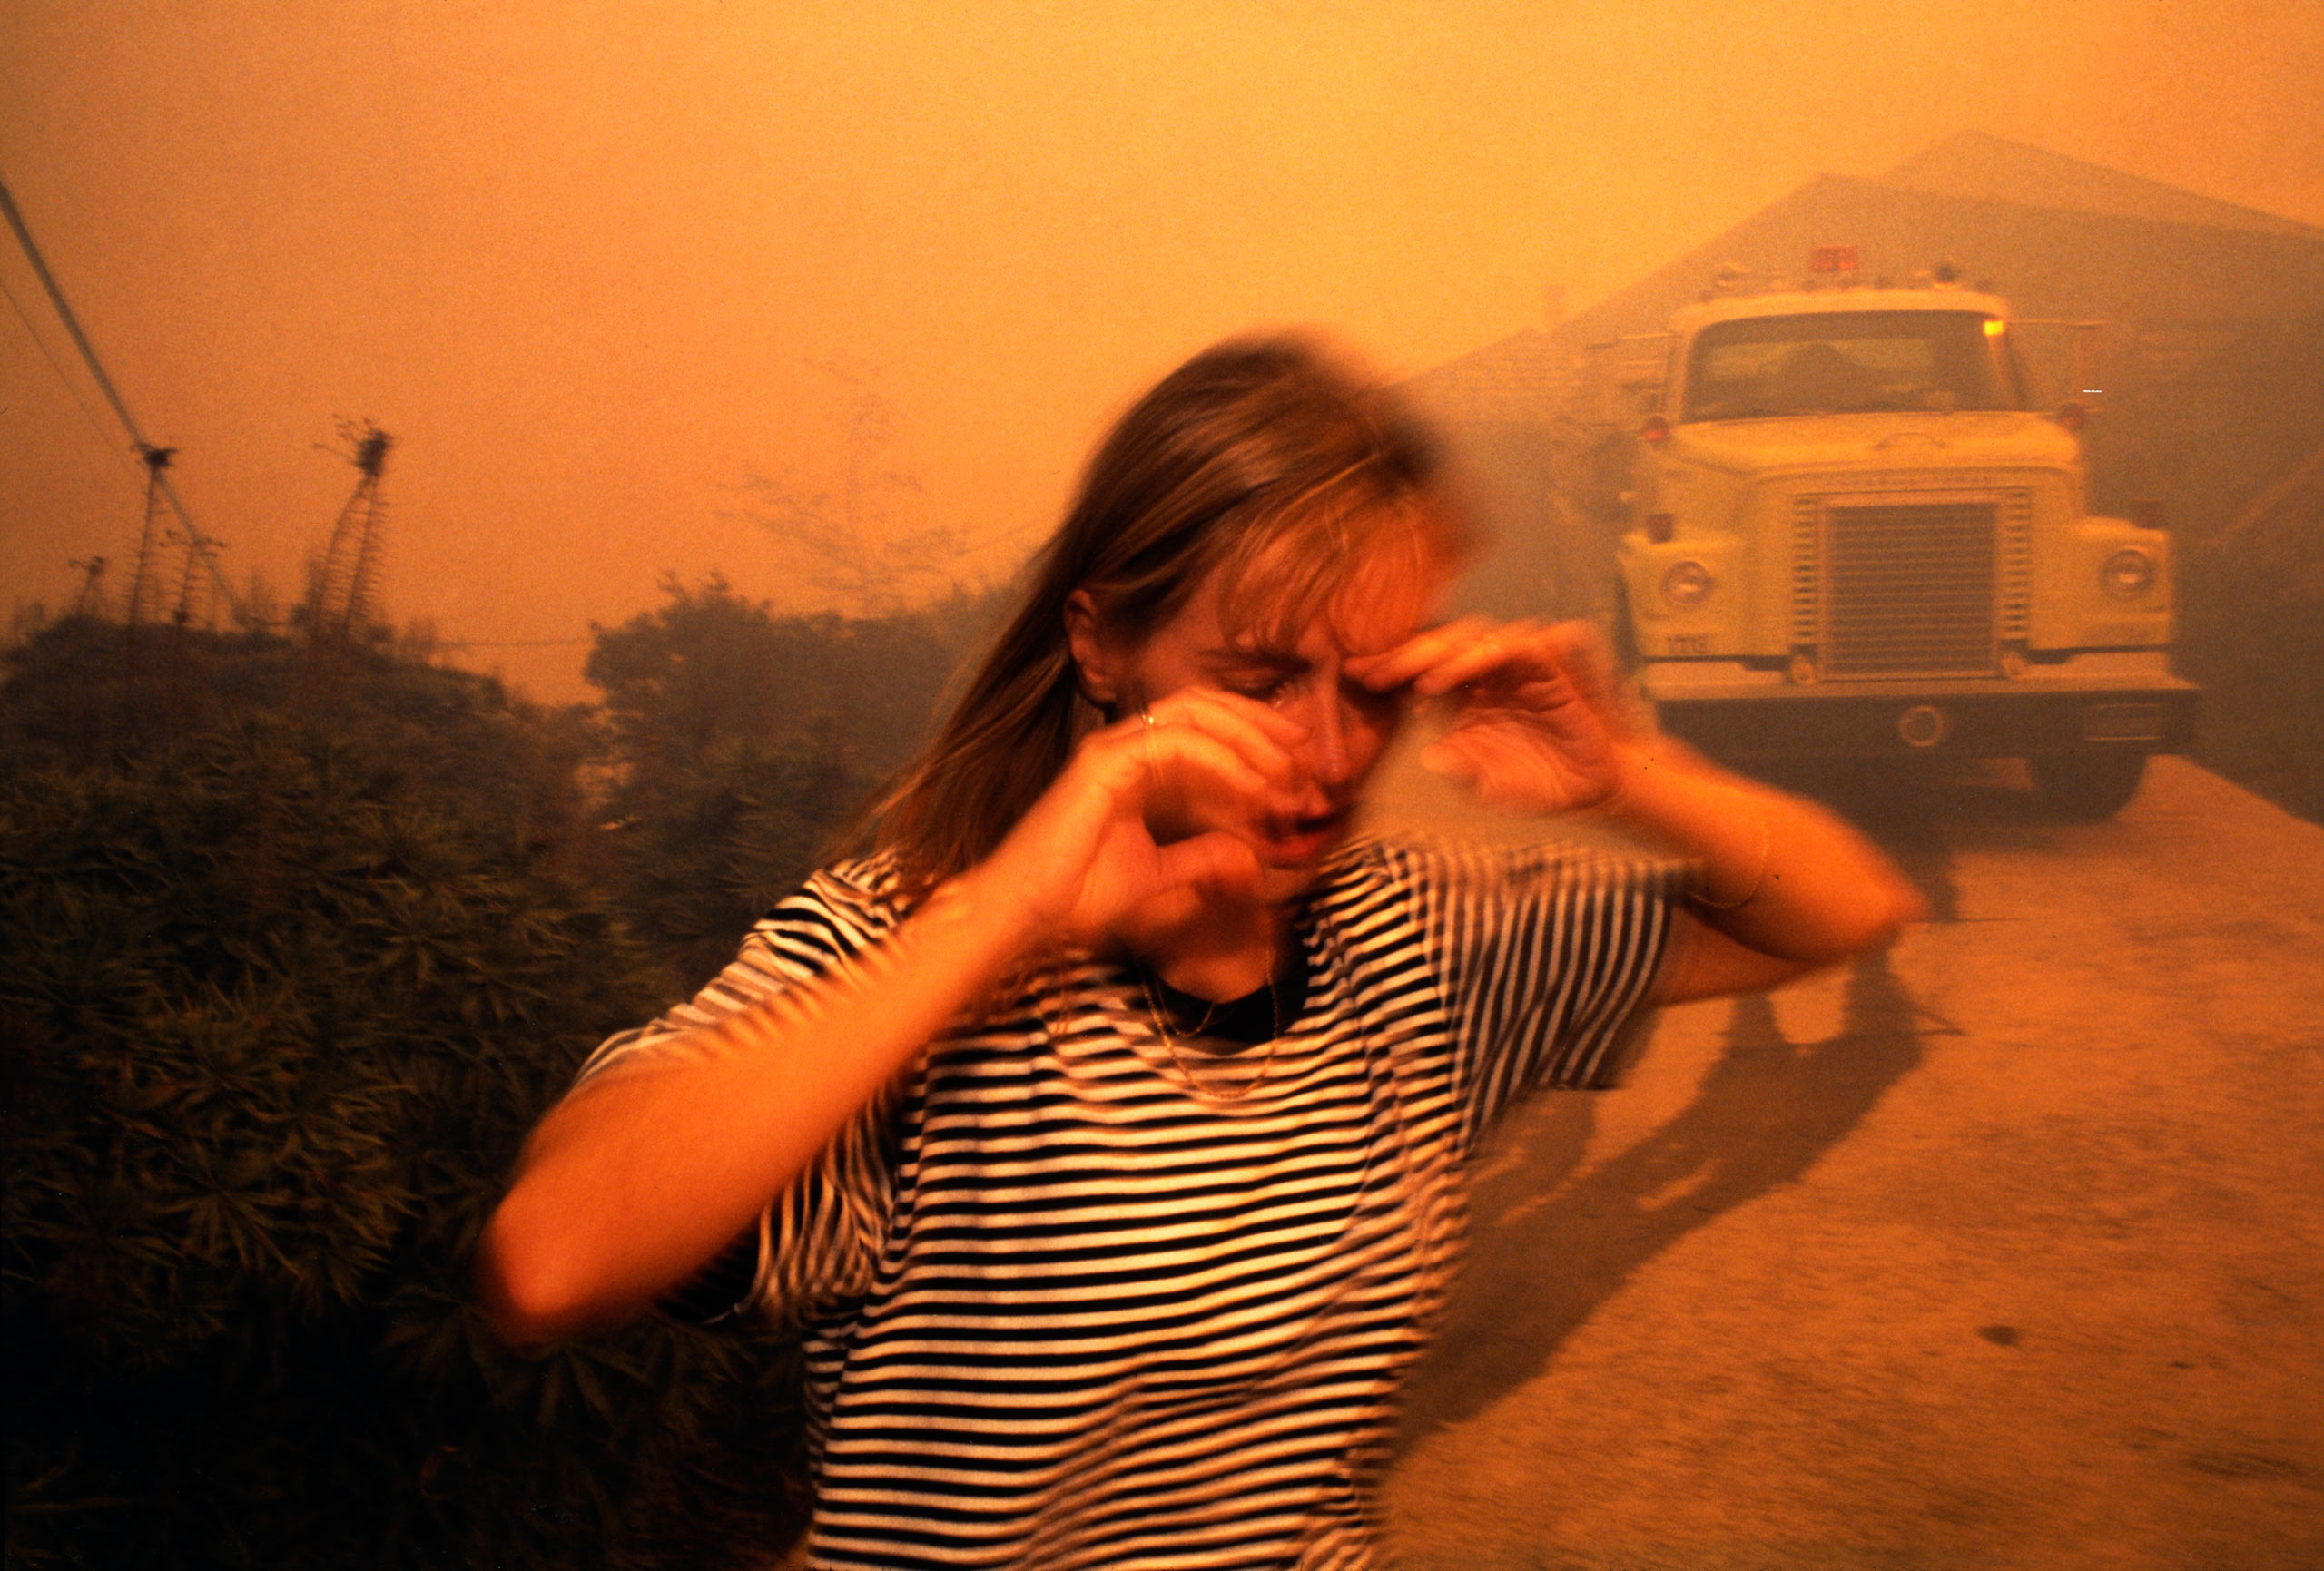 Girl Running from Malibu Fires, 1993.                                 I was not supposed to be in the spot I took this picture. The 1993 Malibu firestorm was so fierce, even credentialed journalists were not allowed up into the hills to cover the epic blaze.                               I had just been disgorged from a first aid truck I had snuck a ride to the scene with when I spotted the girl in the picture, bursting out of a swanky but imminently threatened hilltop home and running right past me into a blood orange hazy hue that seemed to belong to the atmosphere of some exoplanet  —Lara Jo Regan